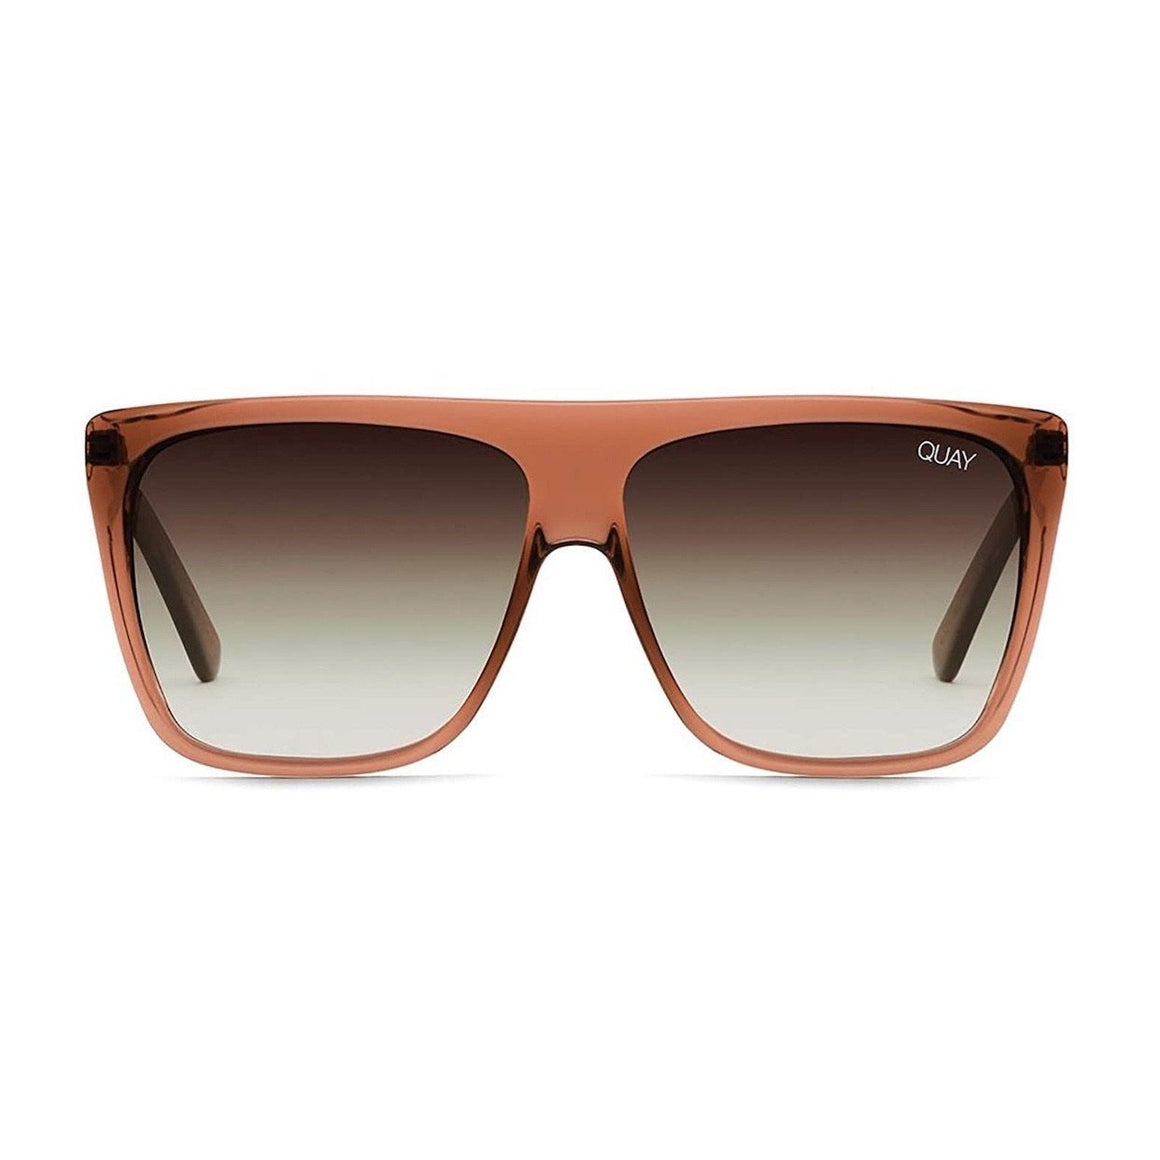 Quay - OTL II Adult Sunglasses - Coffee/Brown Fade Sunglasses Quay